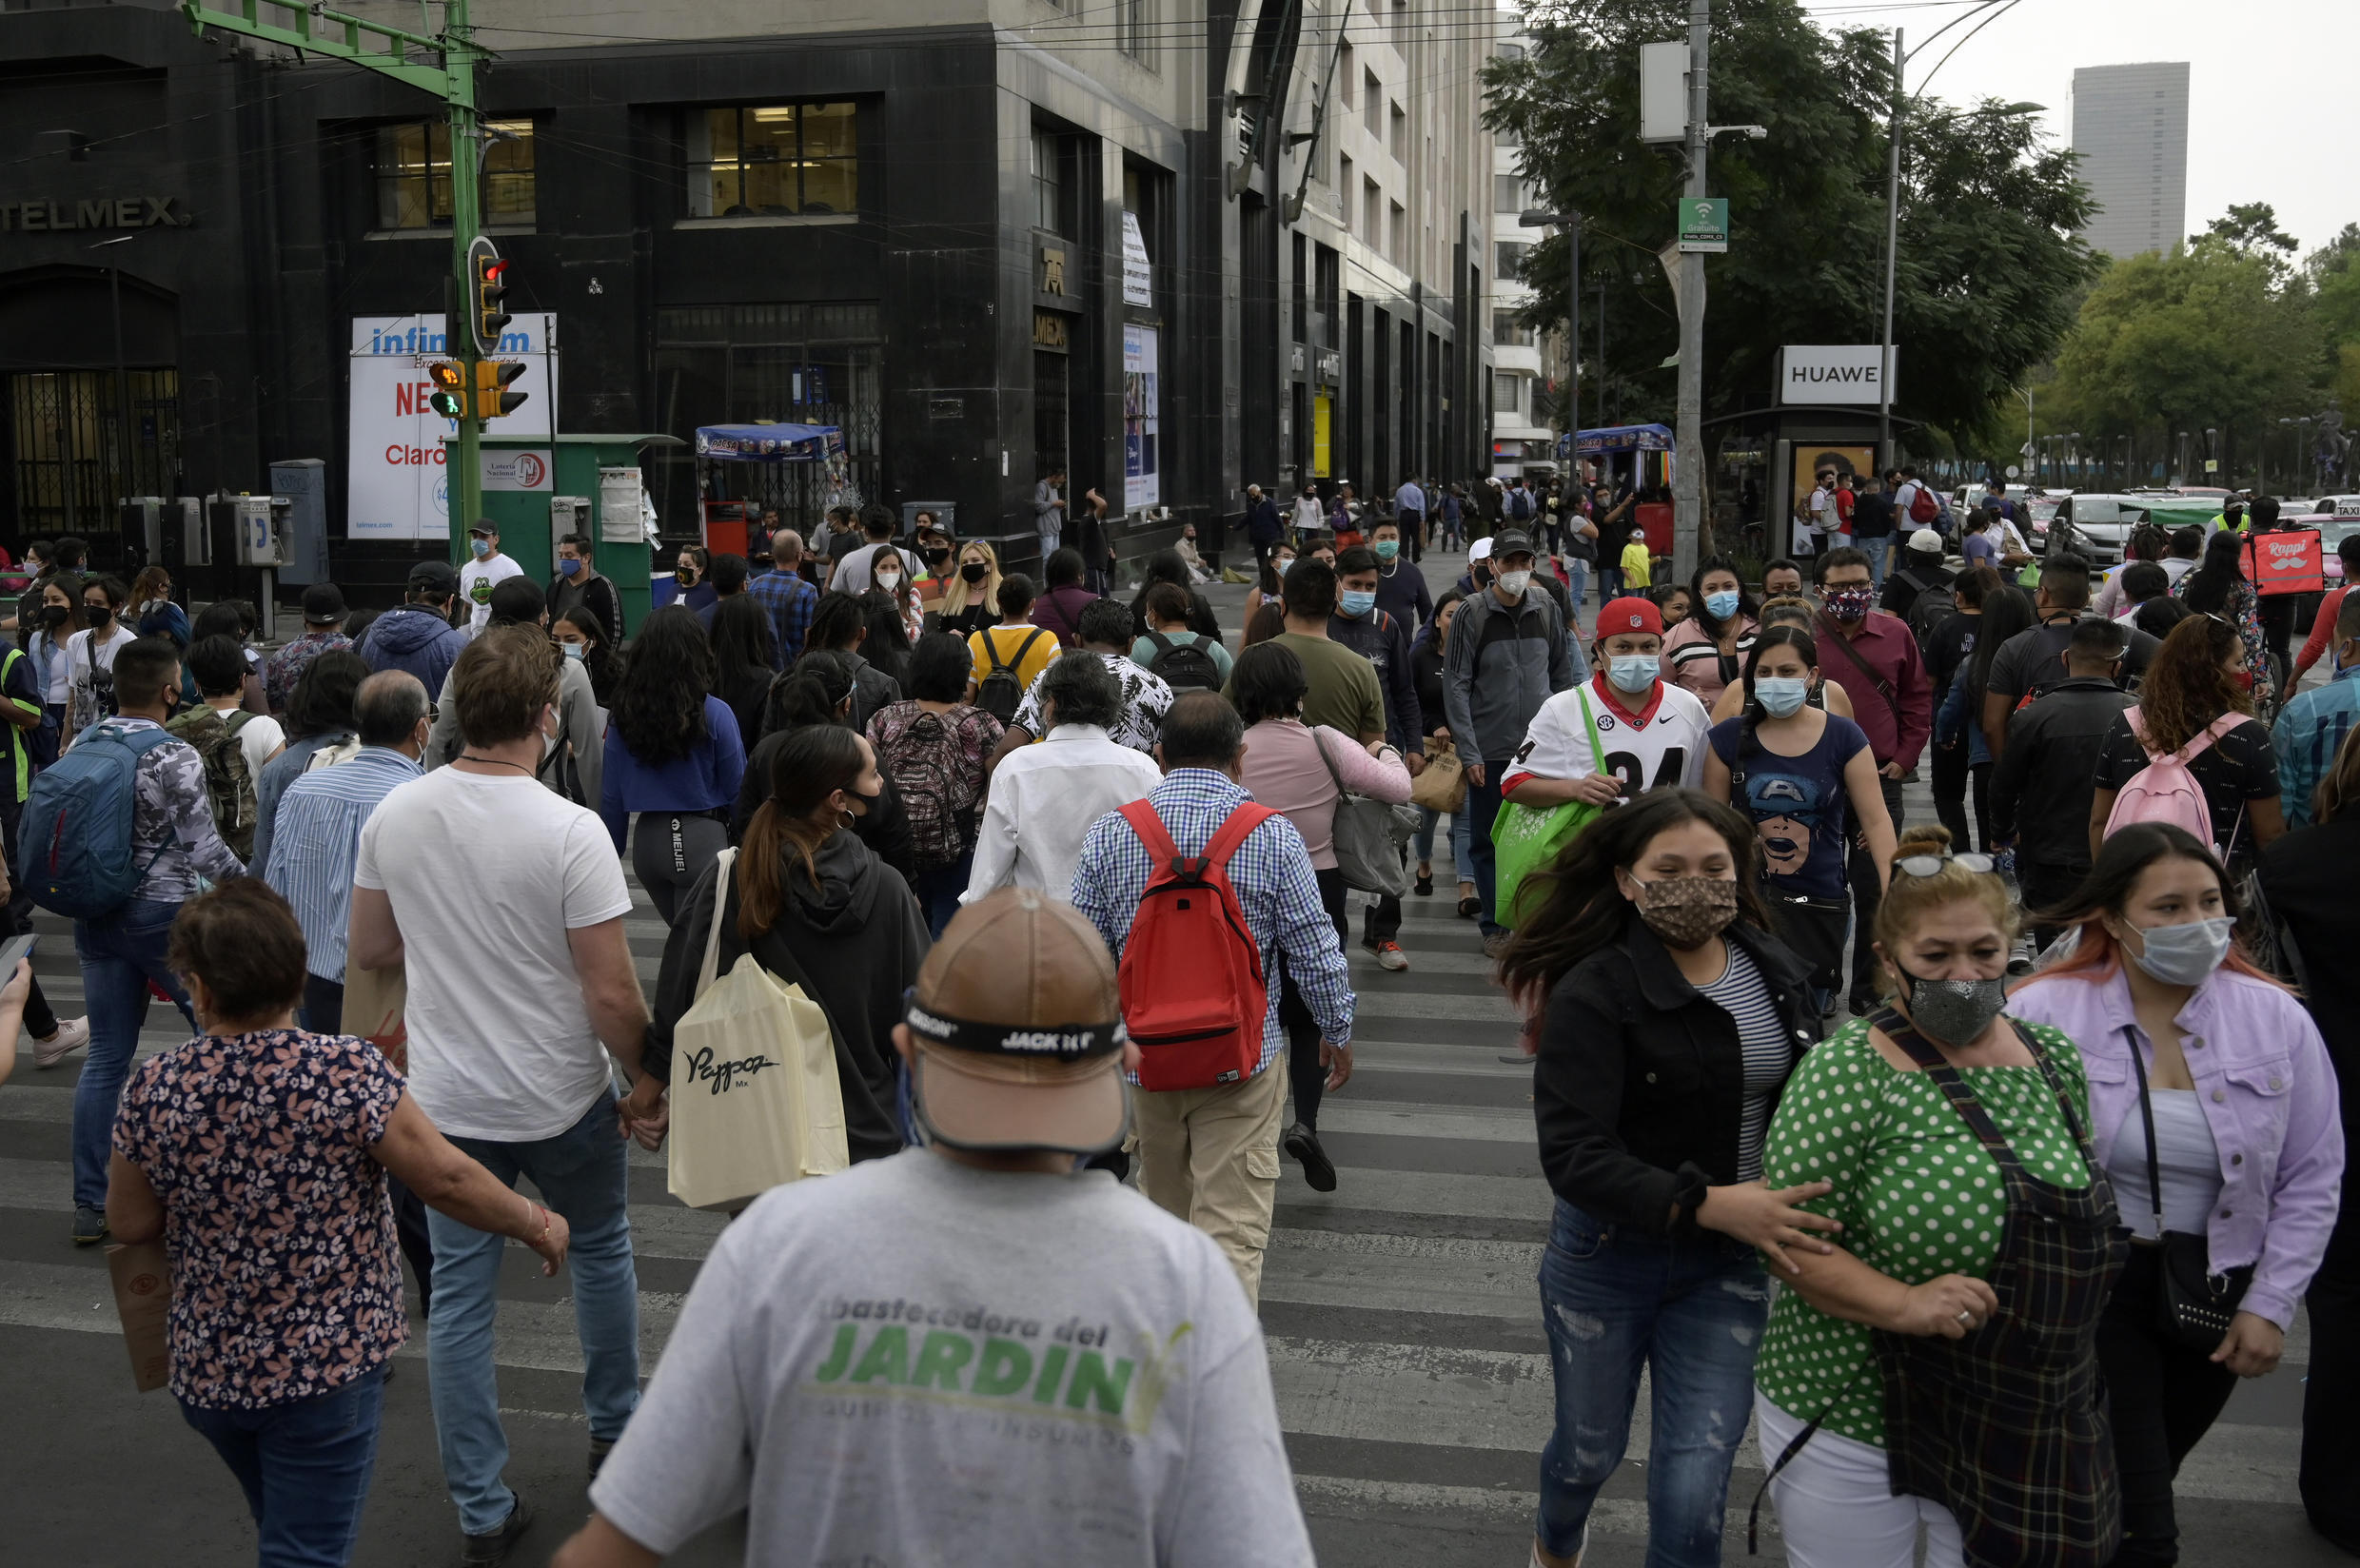 People walk in downtown Mexico City on December 16, 2020, amid the Covid-19 pandemic